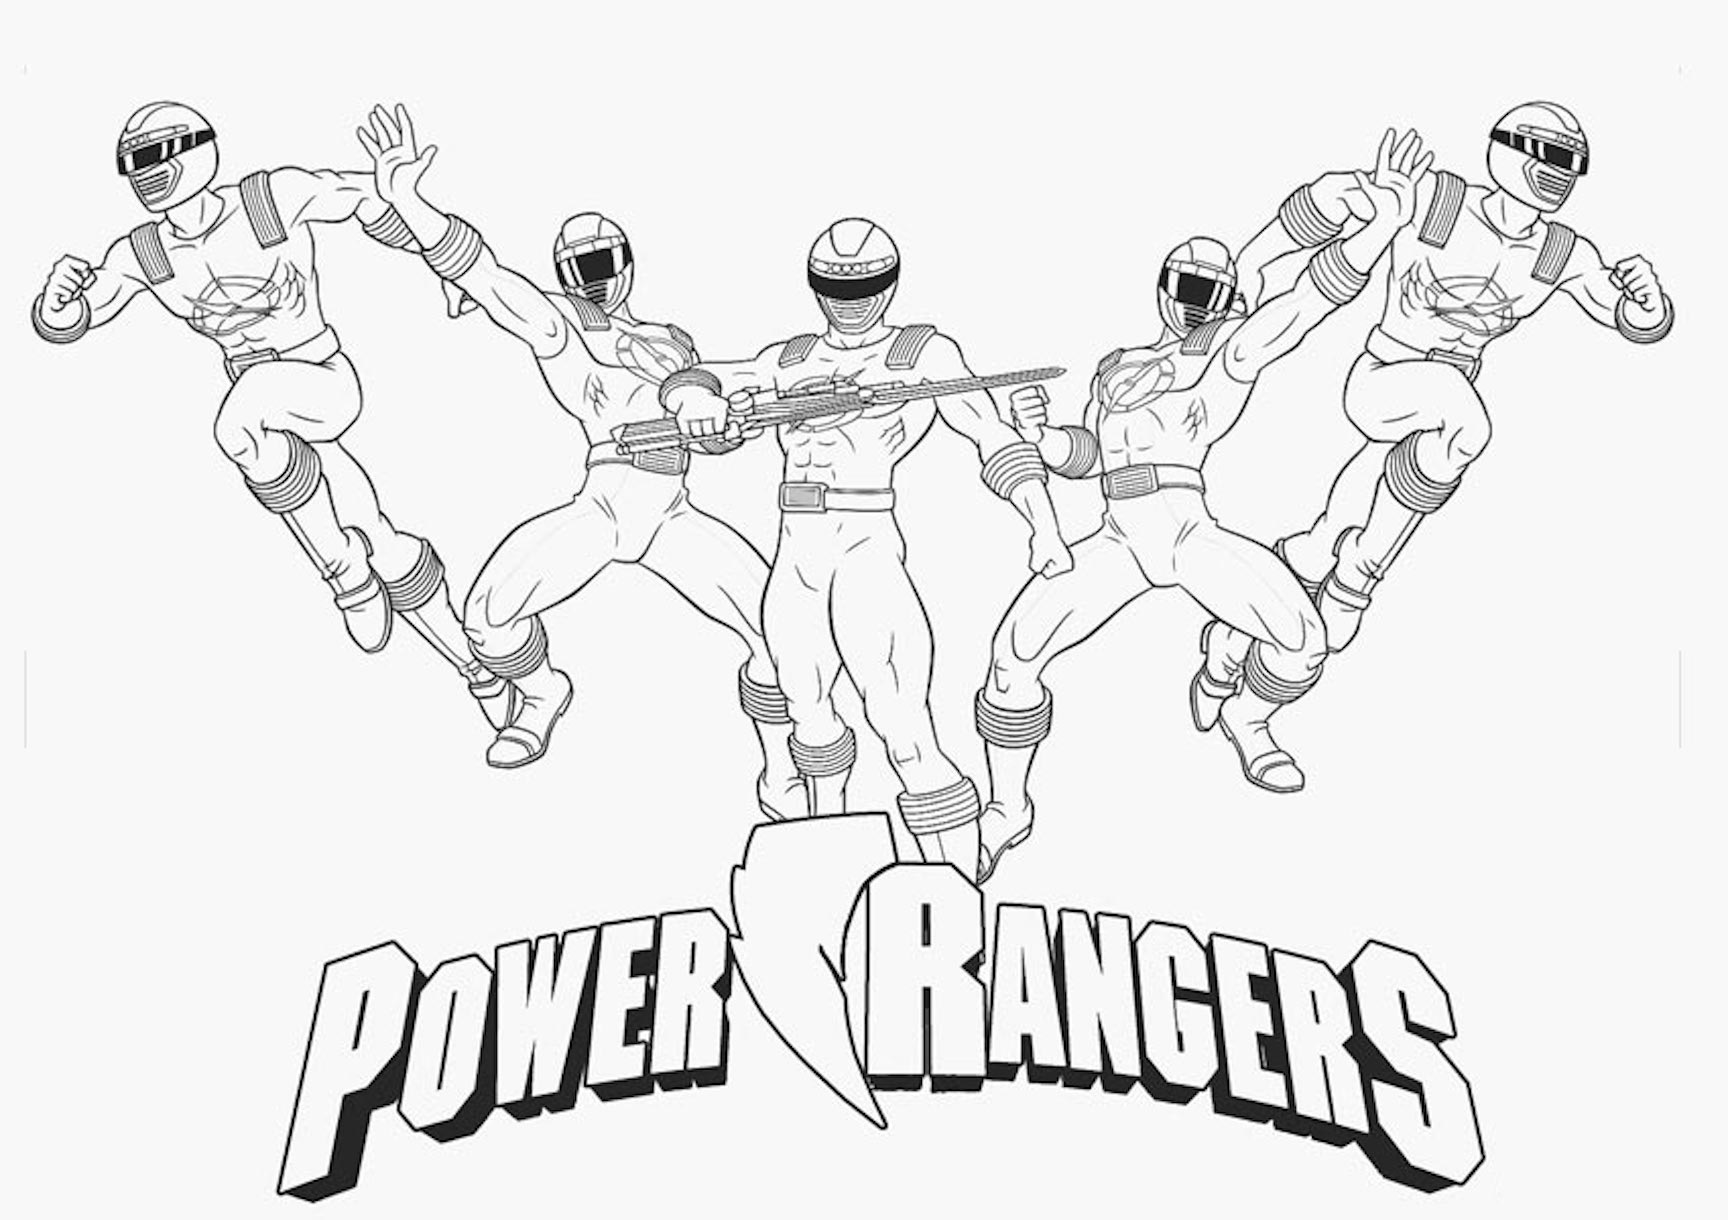 Power Rangers Coloring Pages And Other Top 18 Coloring Themes